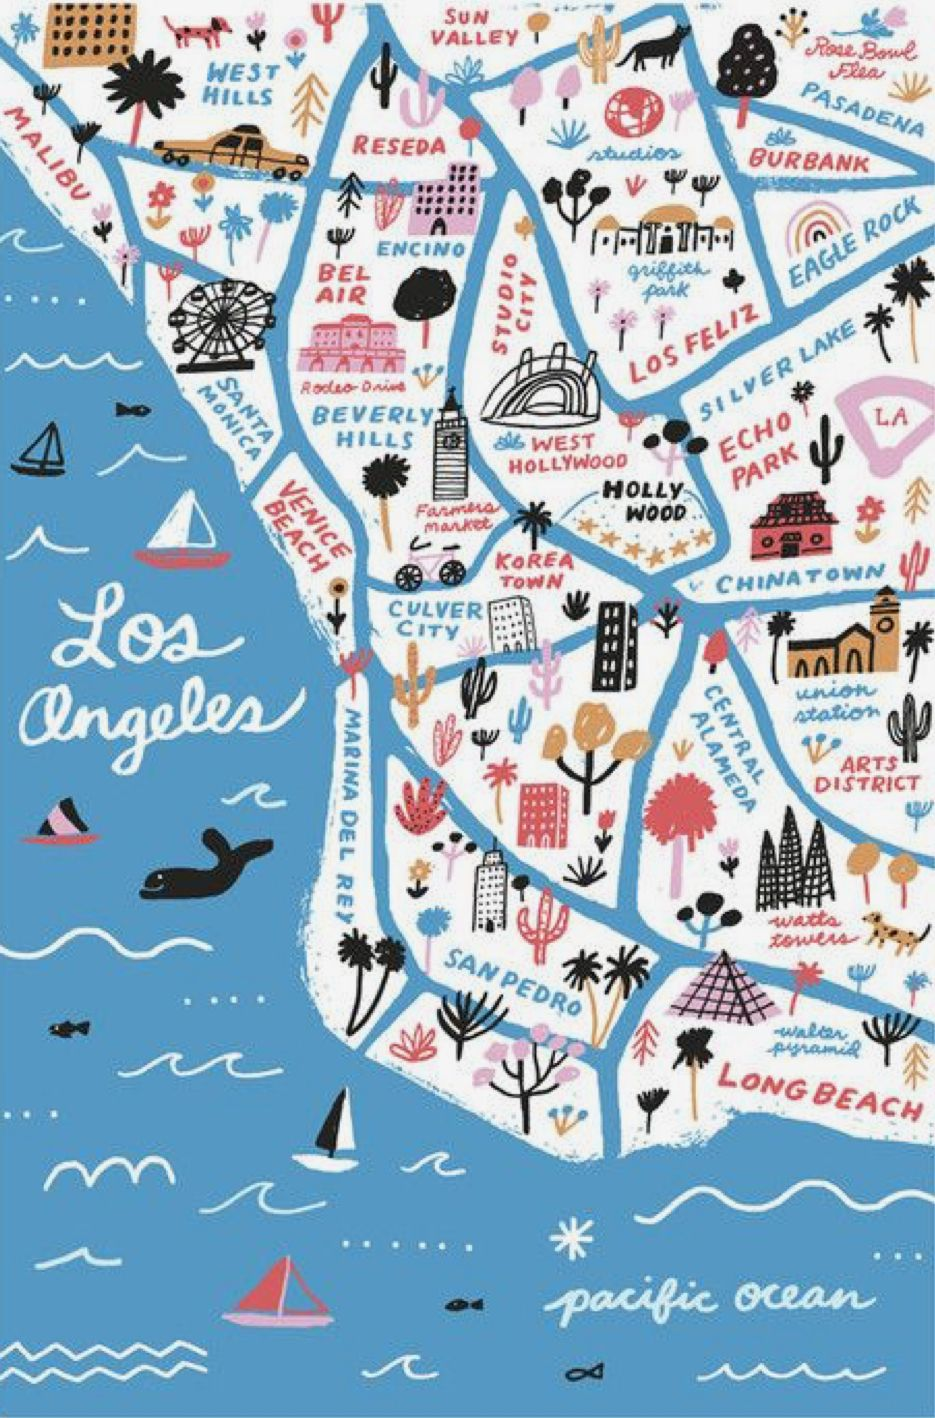 Pin By Kim Lauderdale On Cool Illustrations Los Angeles Map Los Angeles Art Illustrated Map